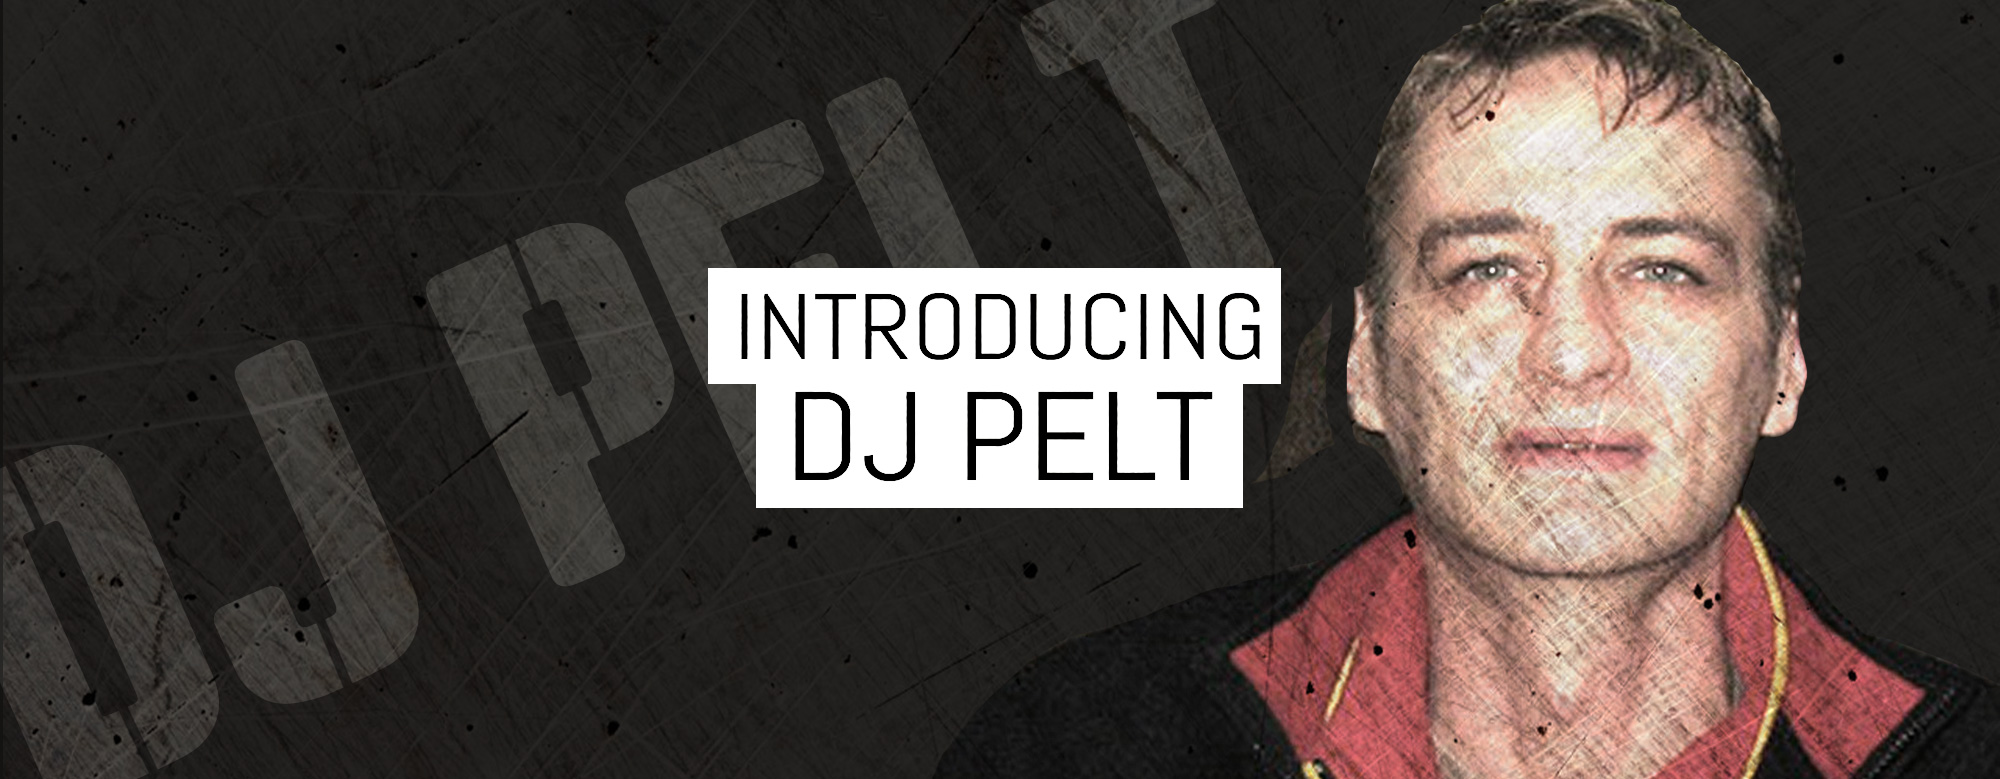 Introducing DJ Pelt